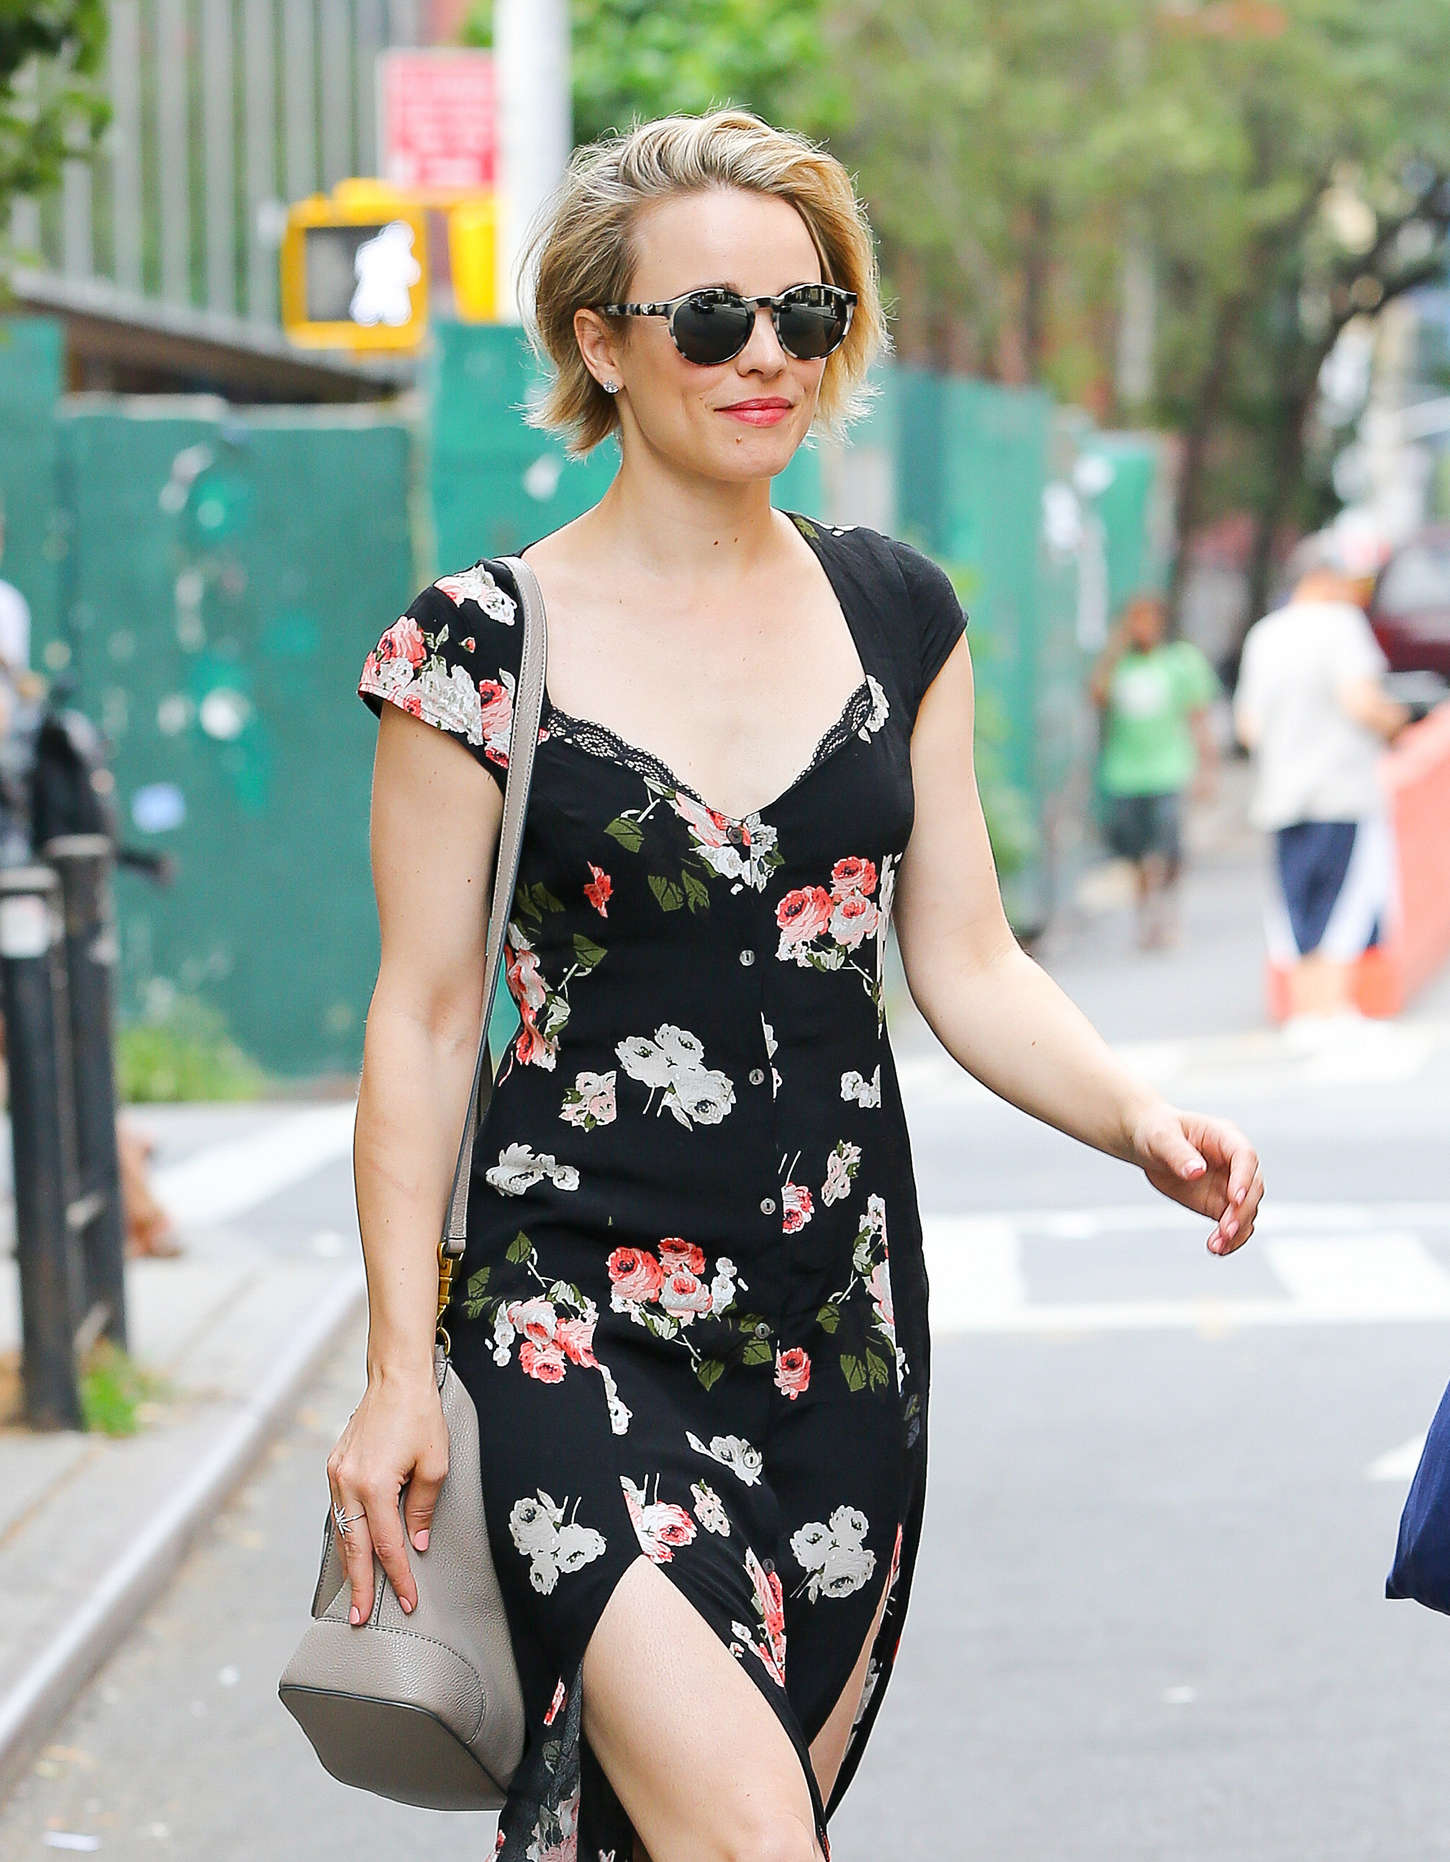 rachel mcadams in floral dress out in nyc. Black Bedroom Furniture Sets. Home Design Ideas